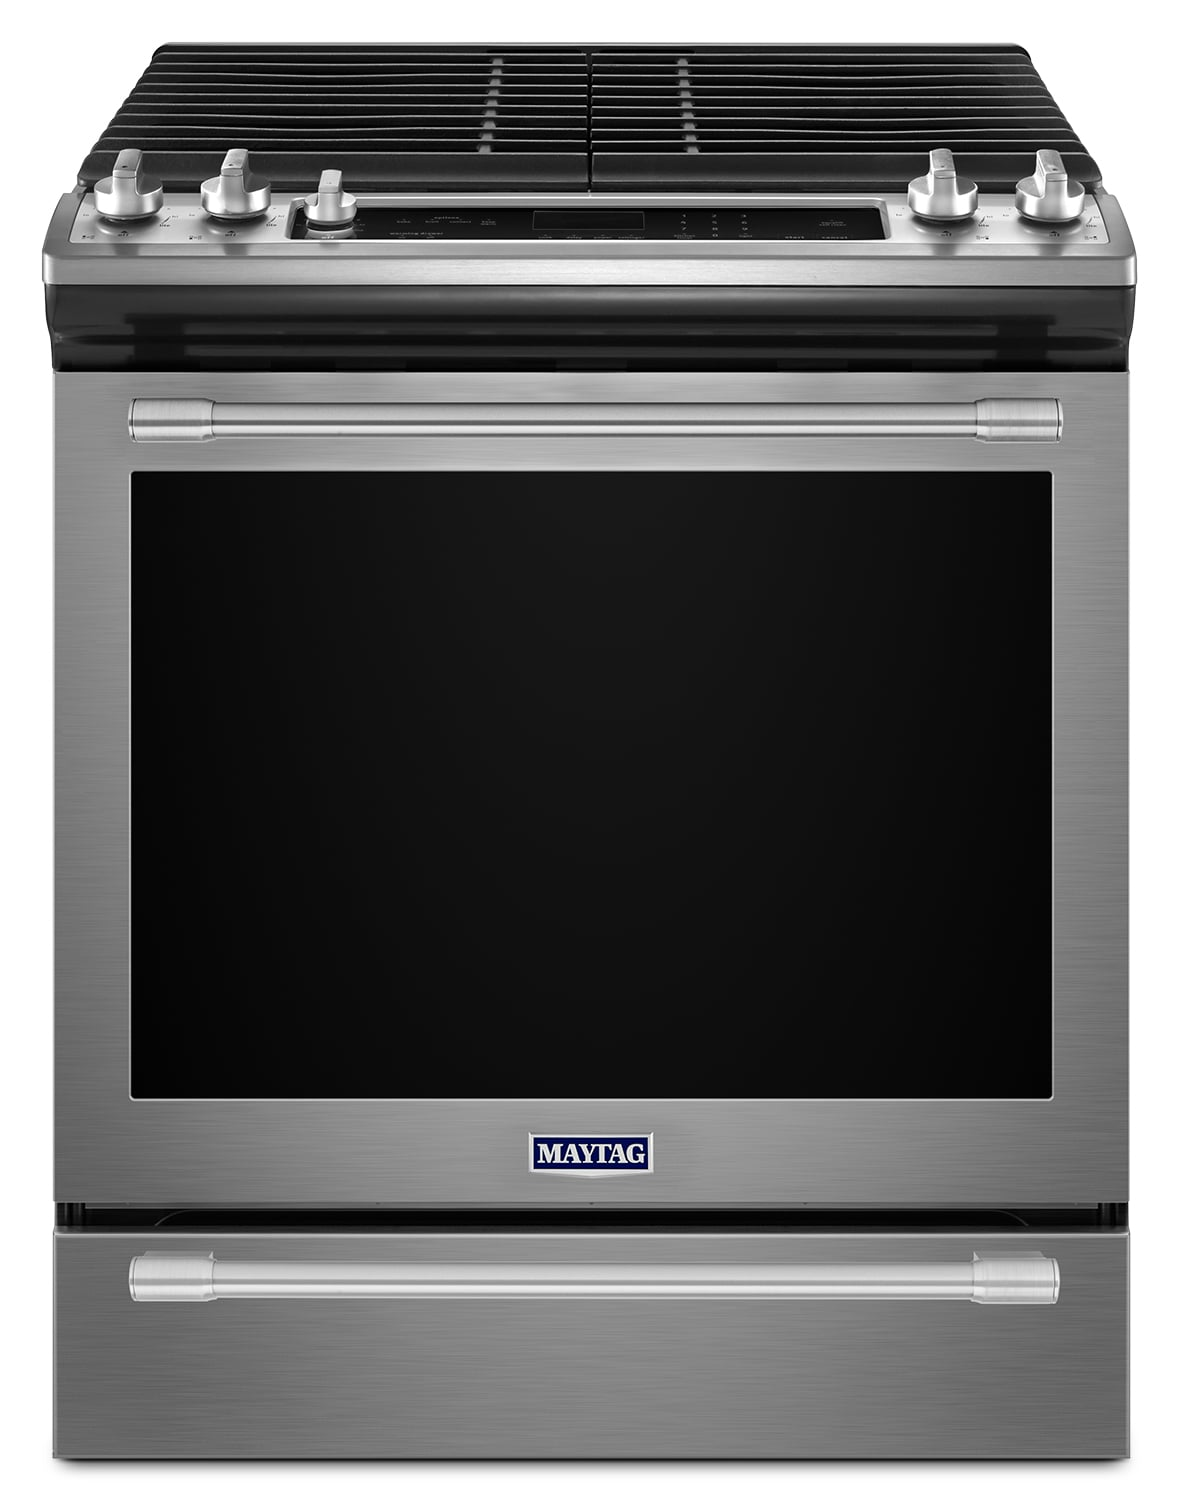 Cooking Products - Maytag 5.8 Cu. Ft. Slide-in Gas Range – MGS8800FZ